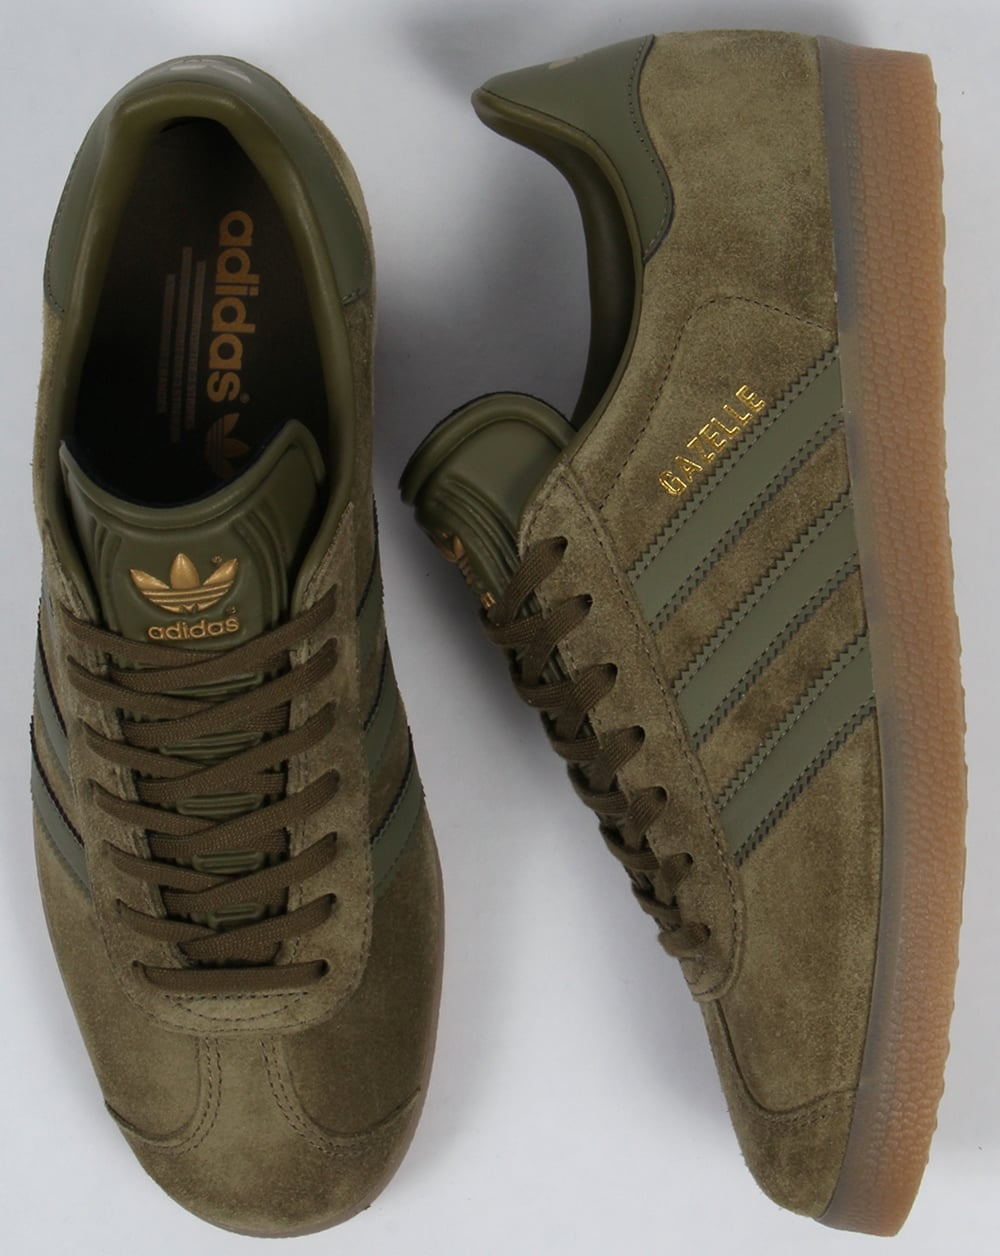 new arrival a4c80 67bed Adidas Gazelle Trainers OliveGum